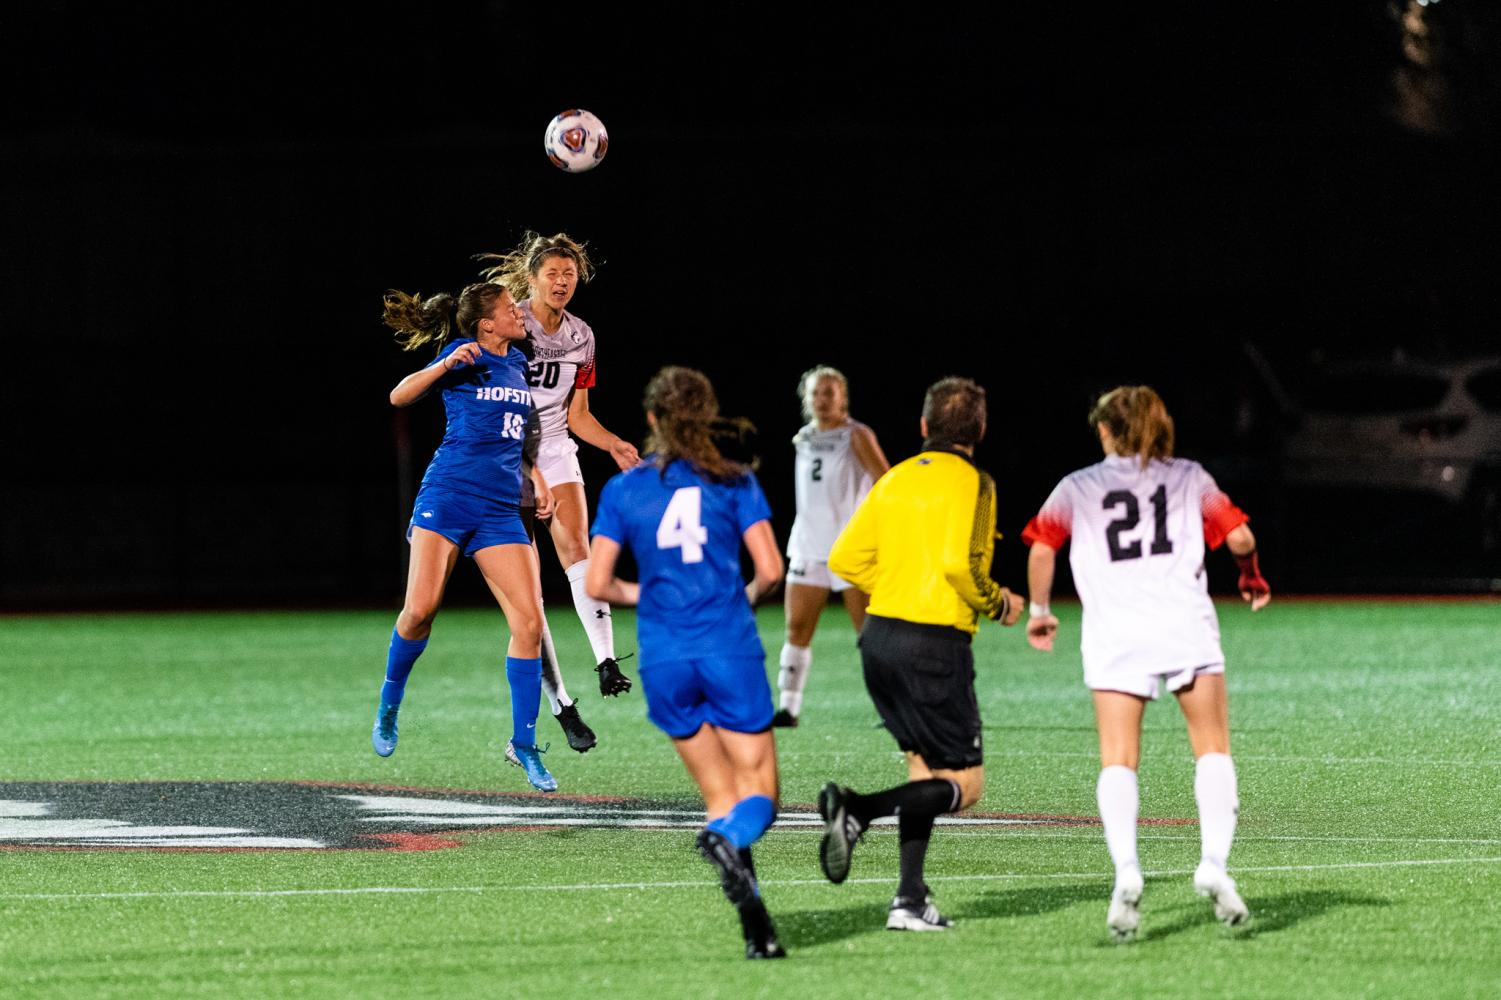 Freshman midfielder Alexis Legowski goes for a header in a match earlier this season versus Hofstra.